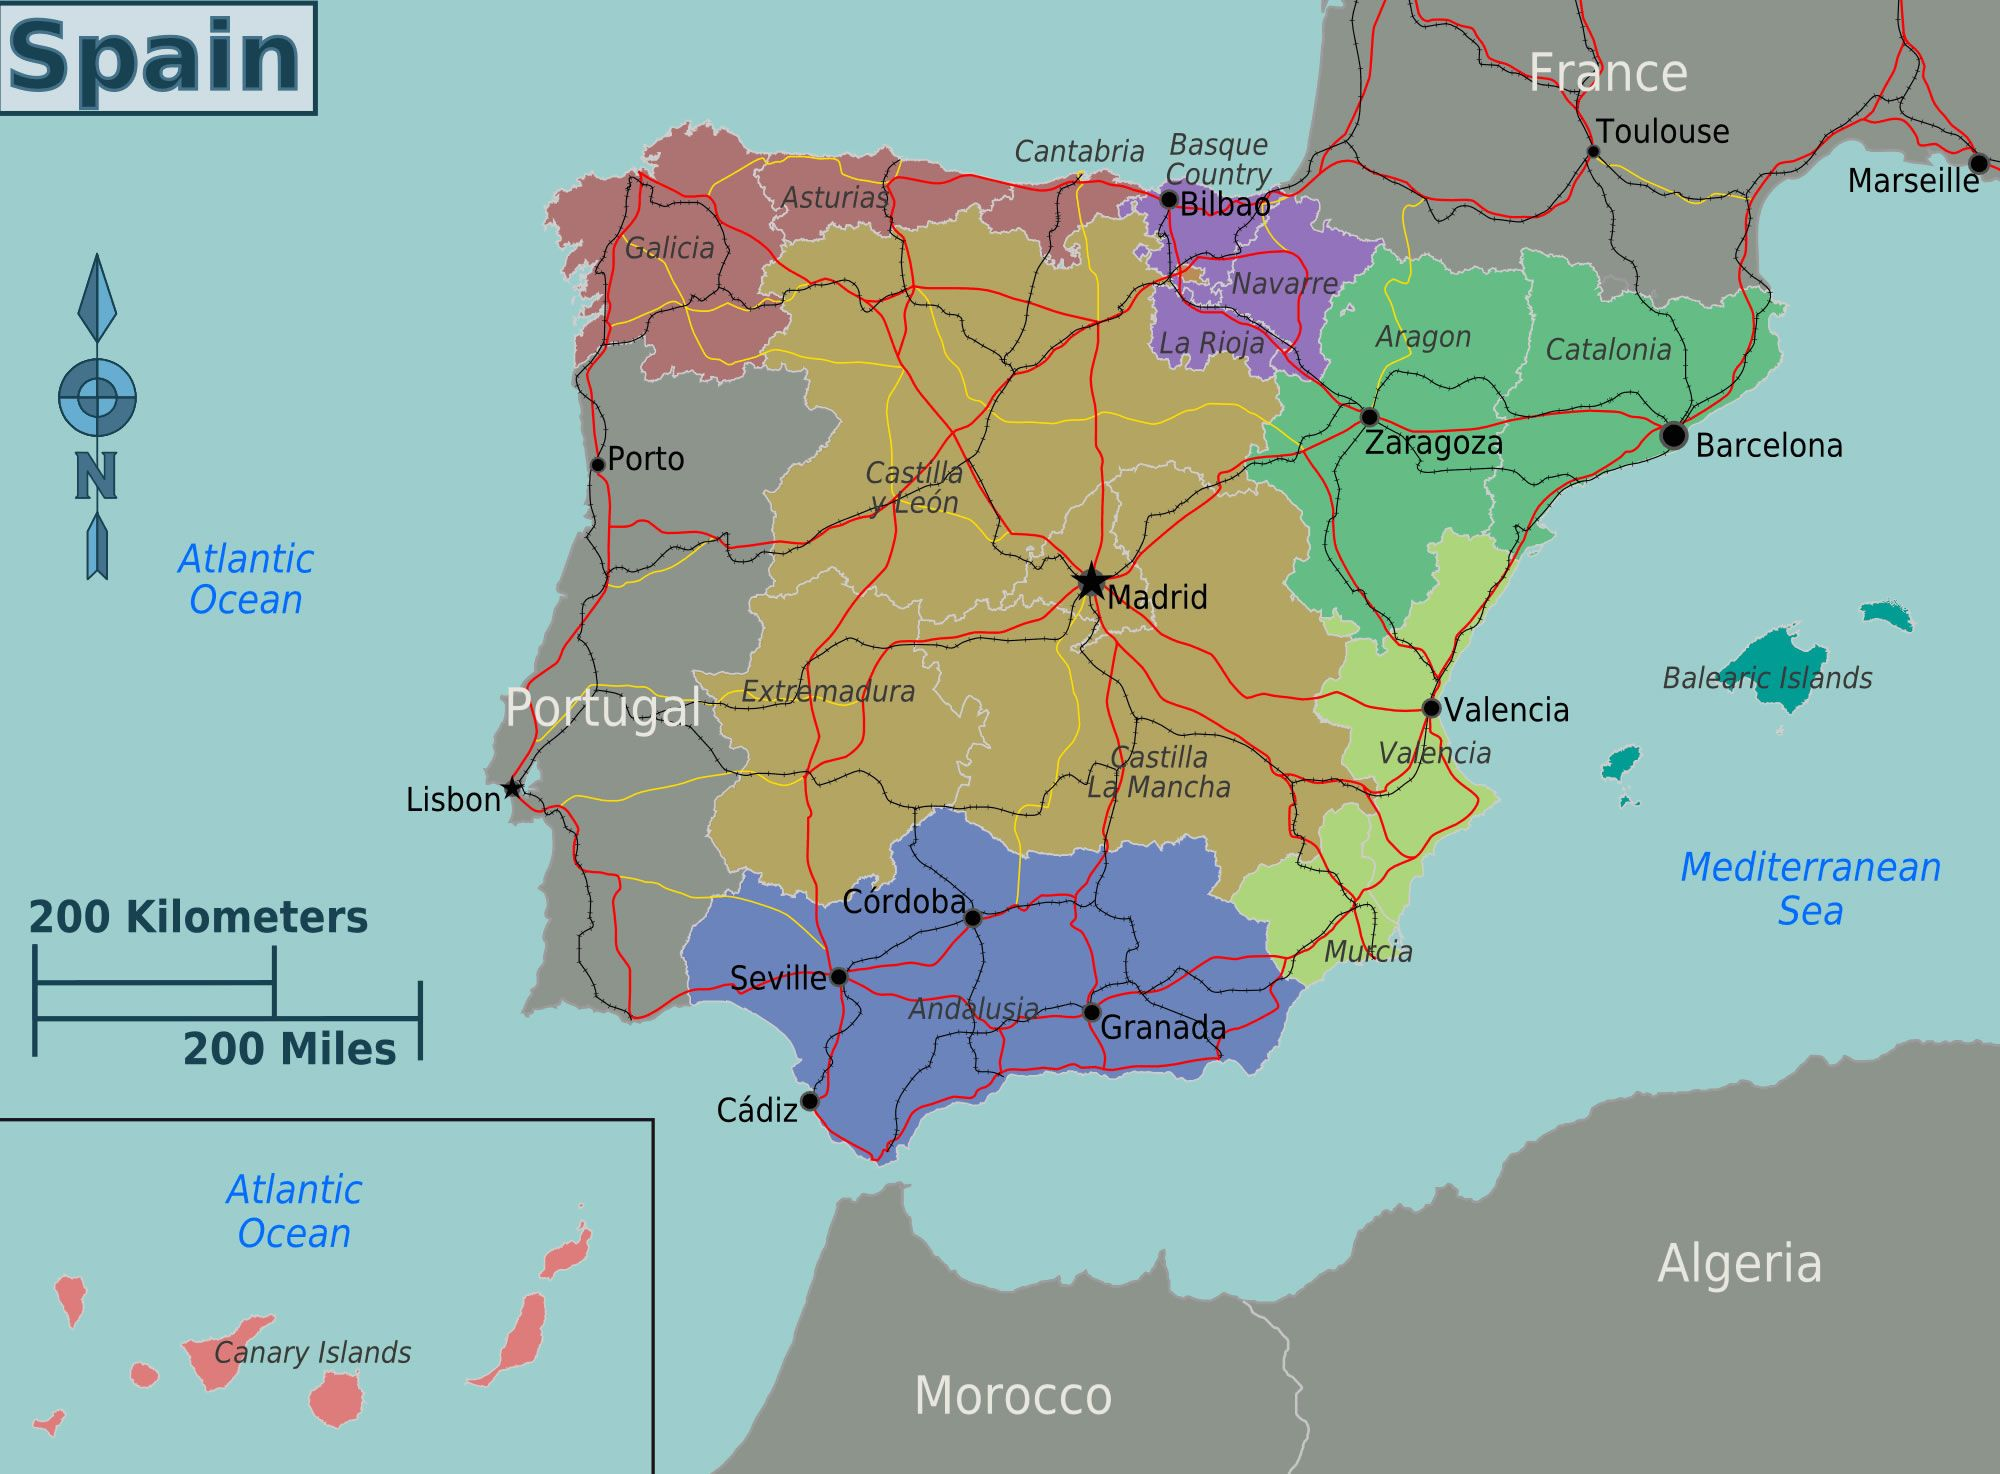 carte regions espagne couleur. | 2018 Travel Ideas and Tips